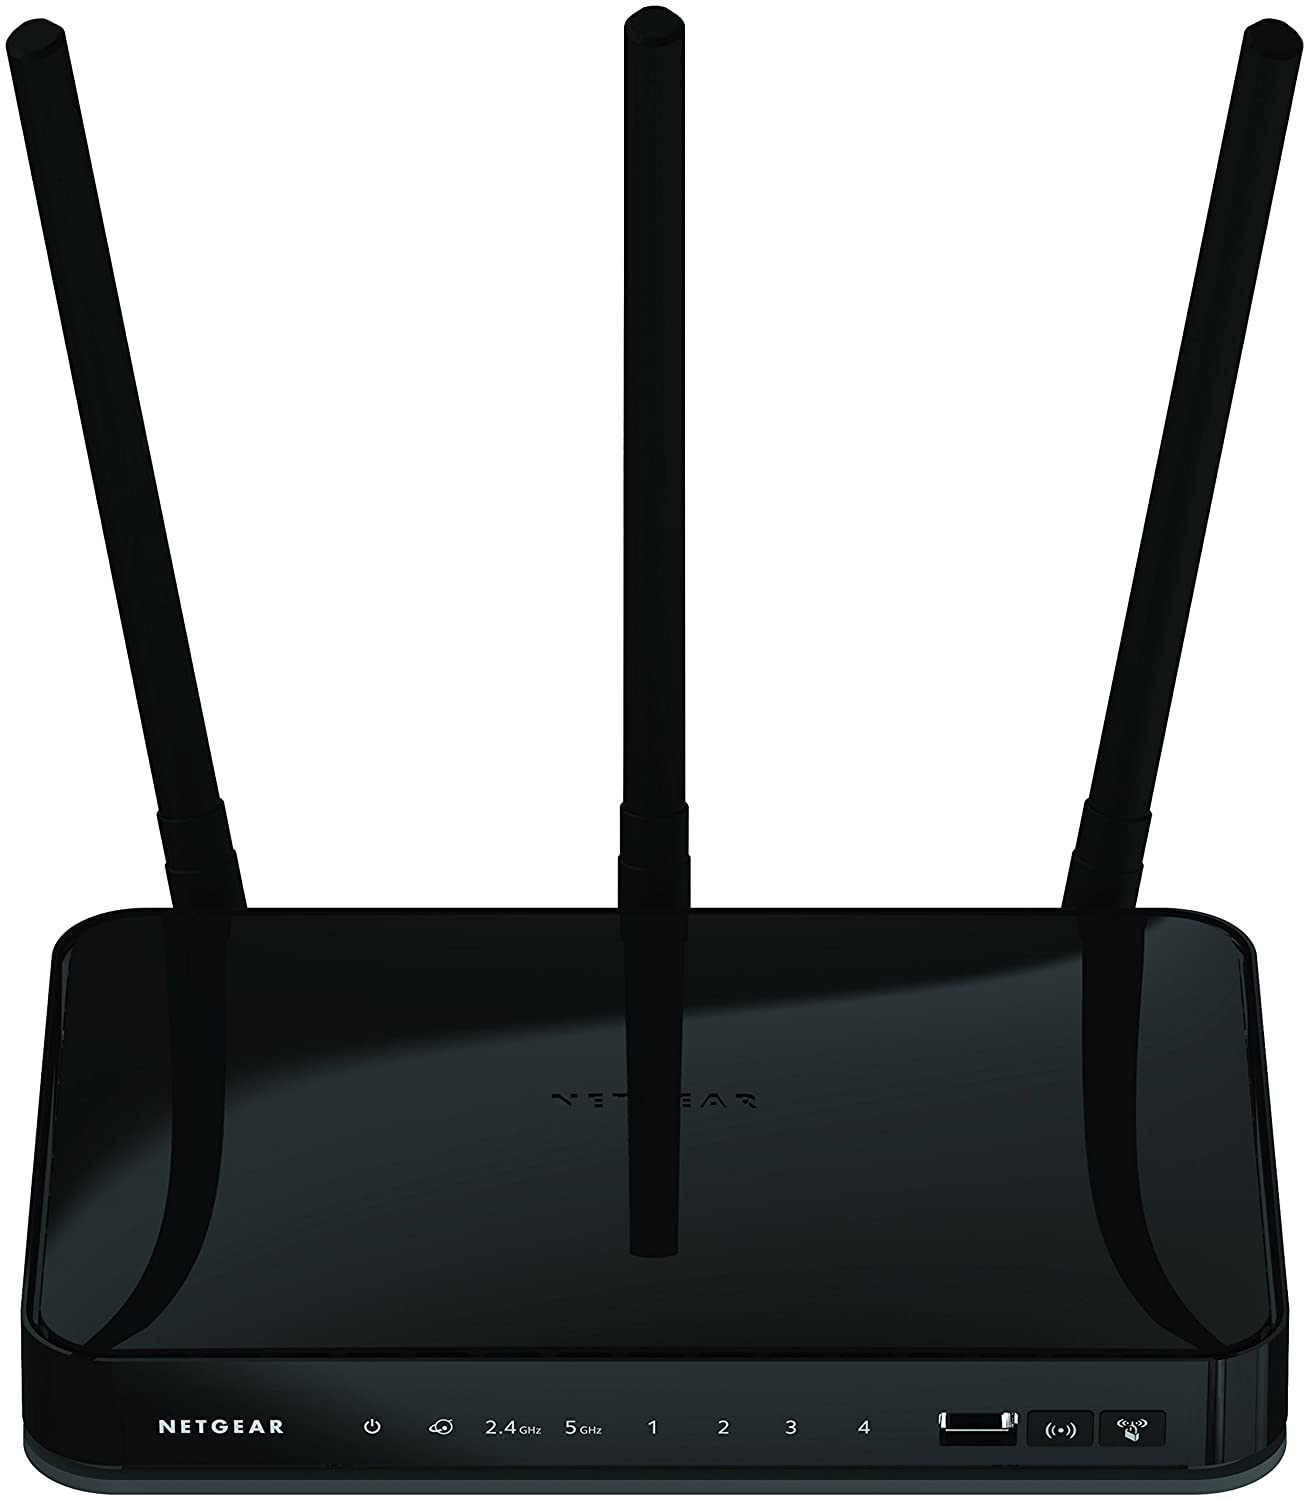 Netgear Ac750 Dual Band Wi Fi Gigabit Router R6050 Modem Wiring Diagram Computers Accessories